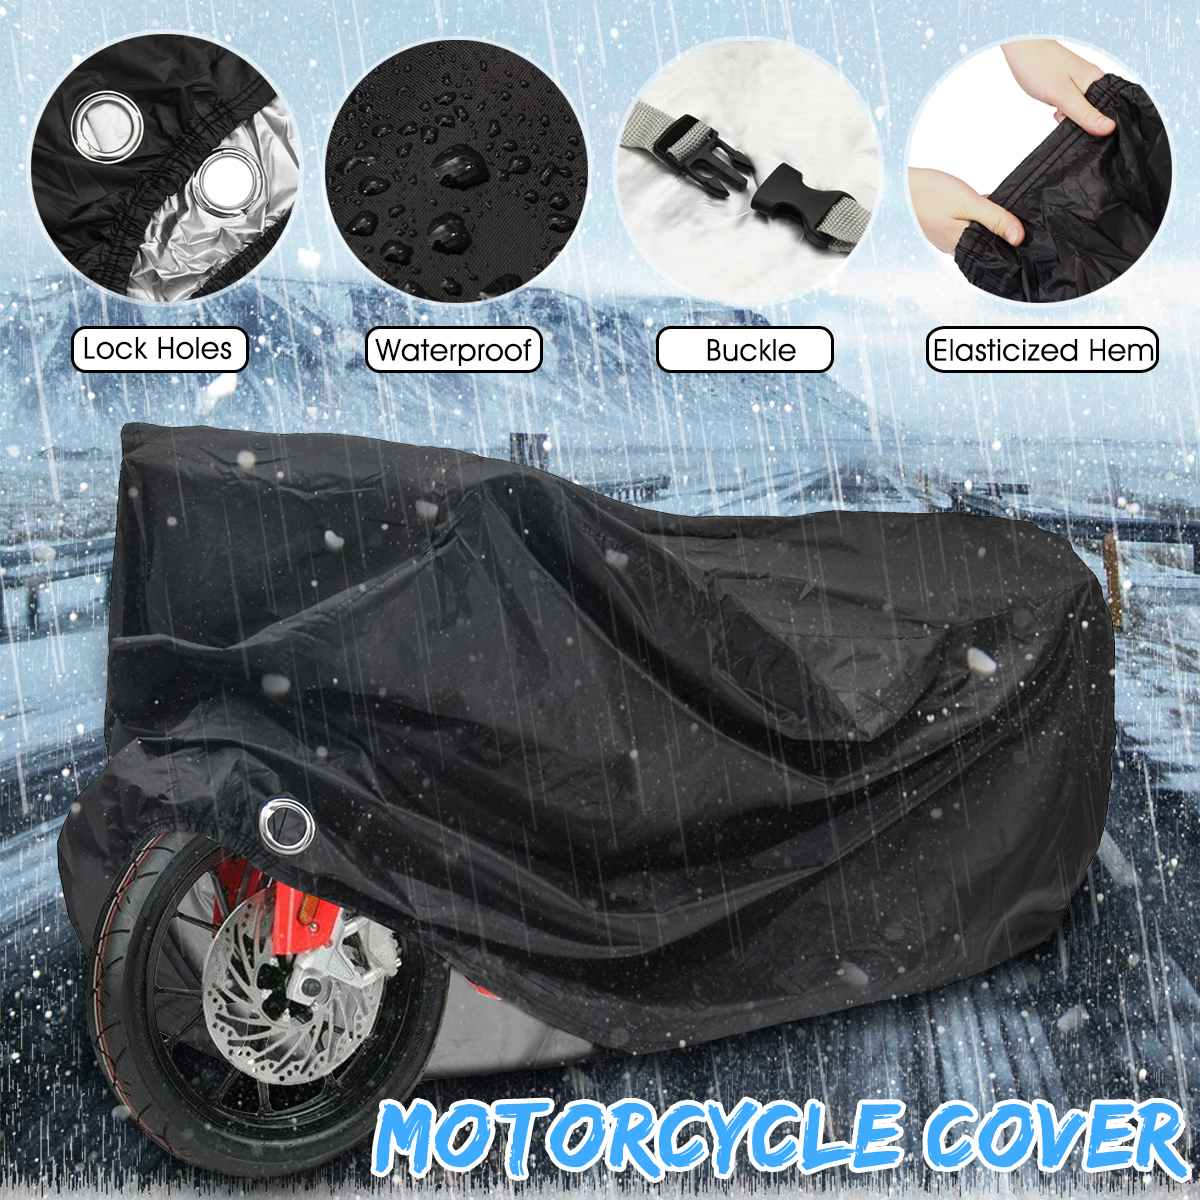 Universal Size M L XL 2XL 3XL 4XL Motorcycle Motorbike Cover Elastic Cycling Protector Outdoor Anti-Rain Snow Dust